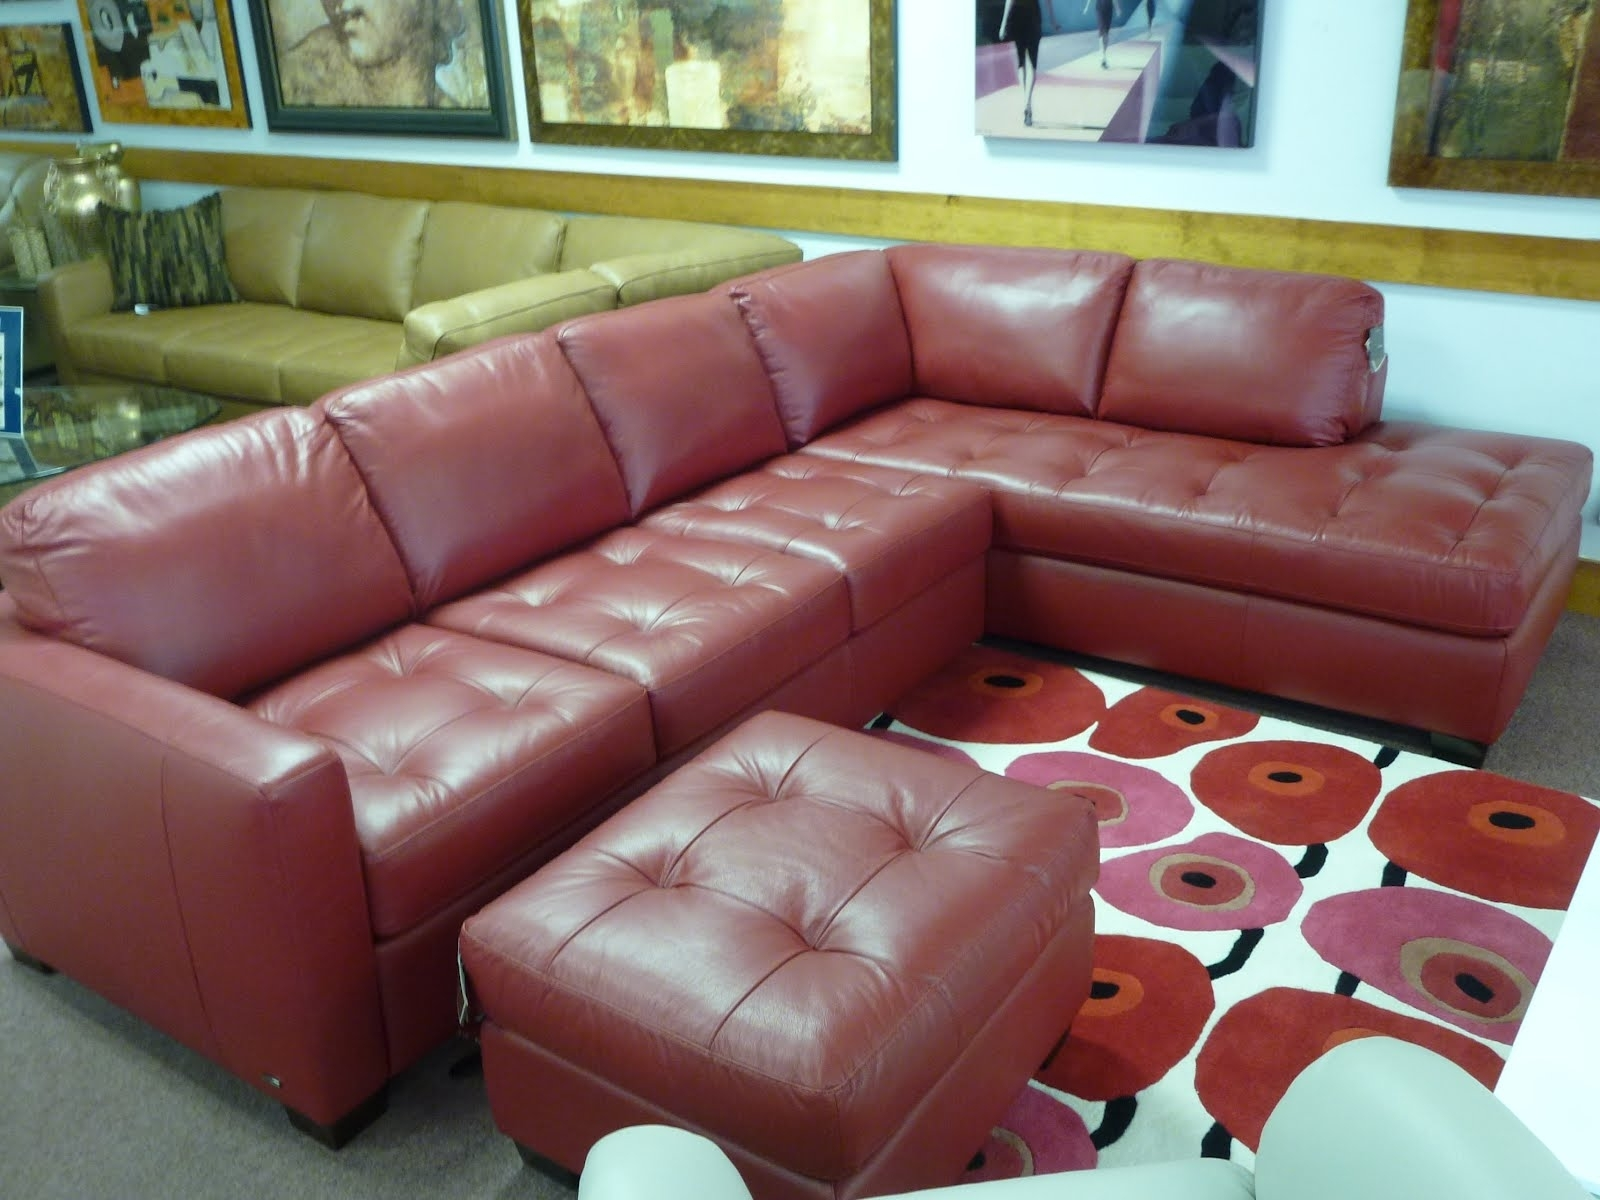 Red Leather Sectional Sofa | Red Leather Sectional Sofa With Chaise intended for Red Leather Sectional Sofas With Ottoman (Image 12 of 15)